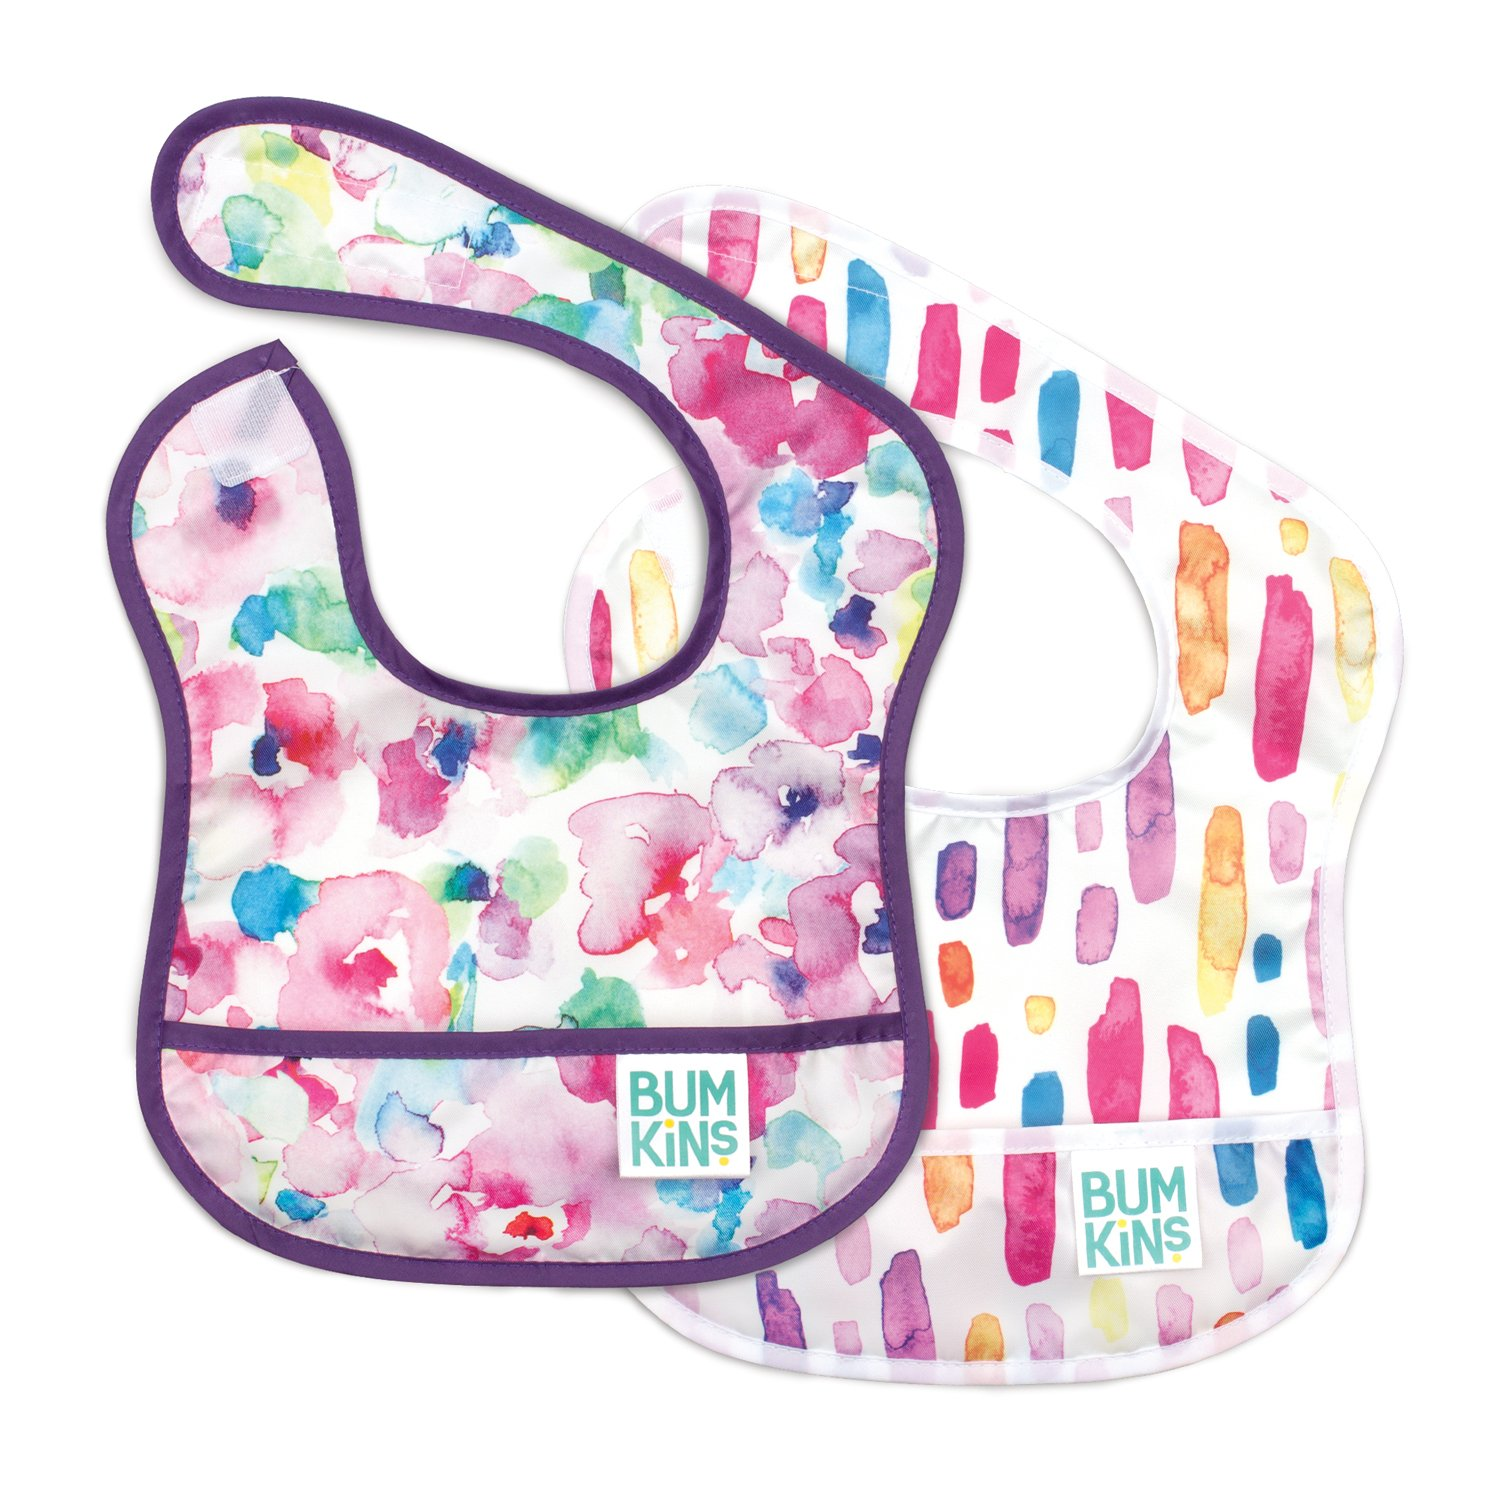 Bumkins Starter Bib 2-Pack Washable Stain and Odor Resistant Waterproof 3-9 Months Baby Bib Infant Arrows /& Feathers